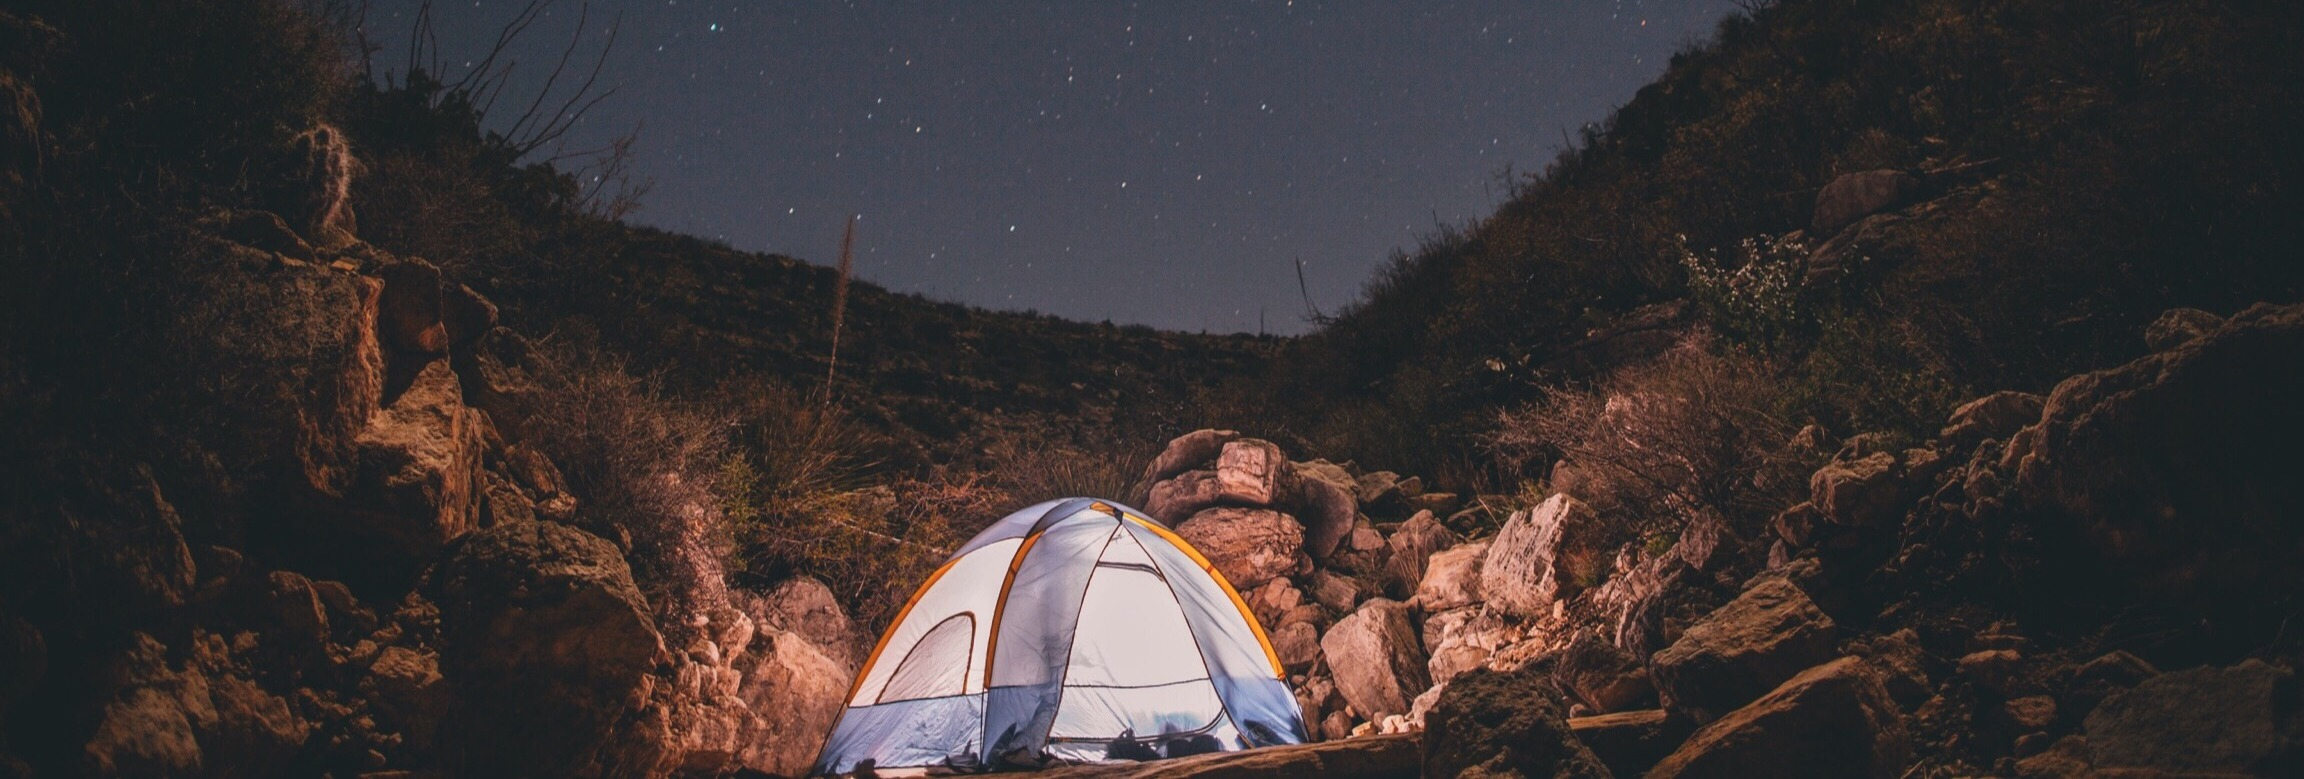 The Basecamp: Issue no. 1